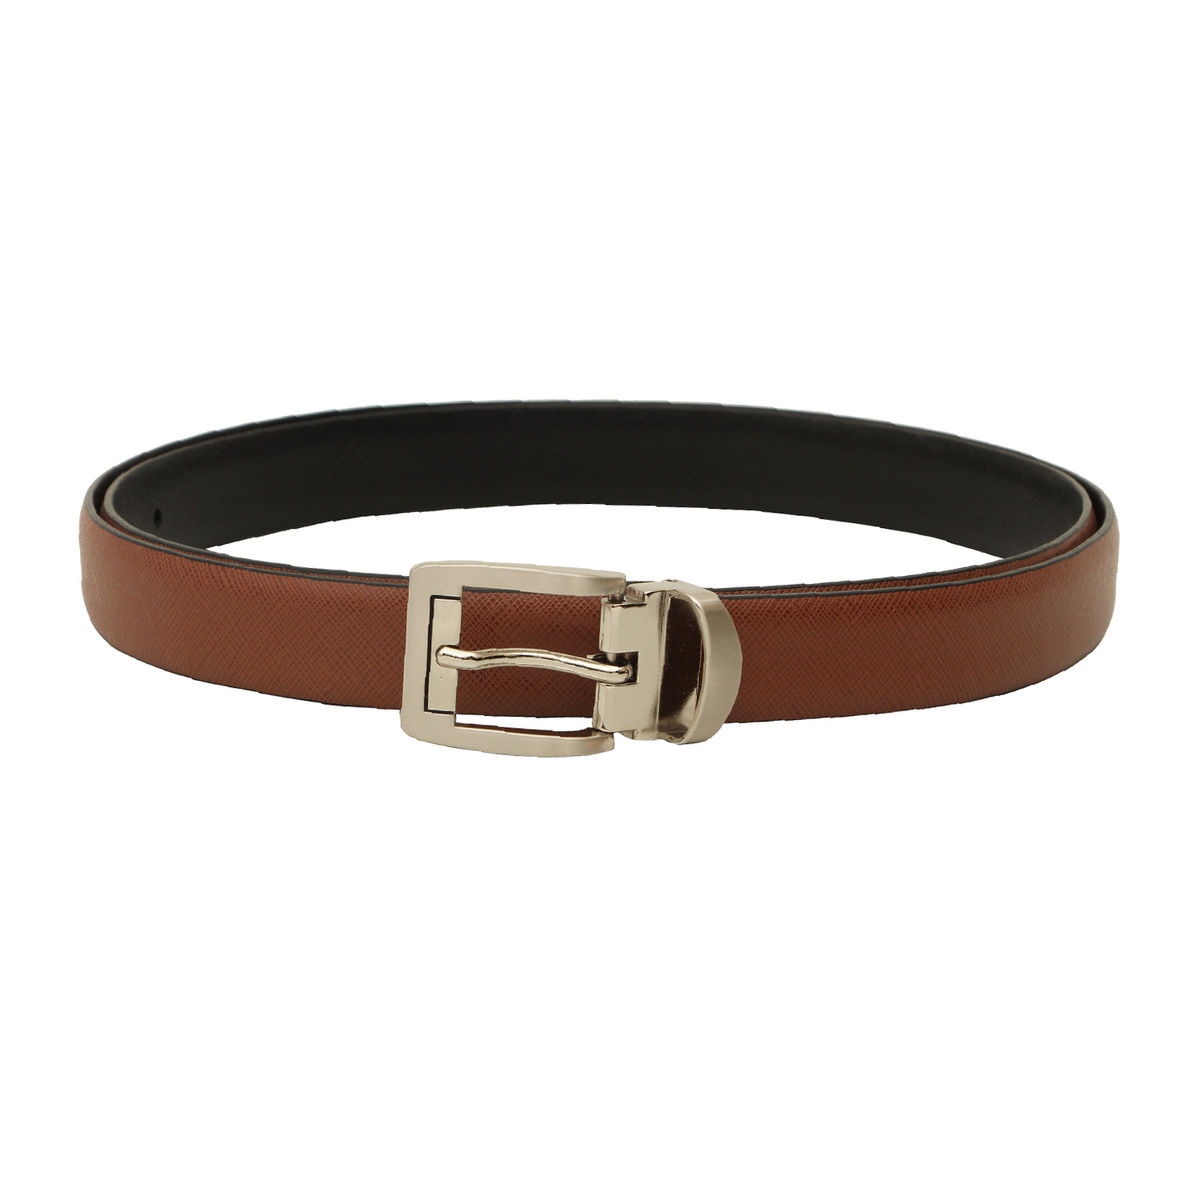 6a8e538ceedbb ... Da Milano Cognac Ladies Belt · zoom ...